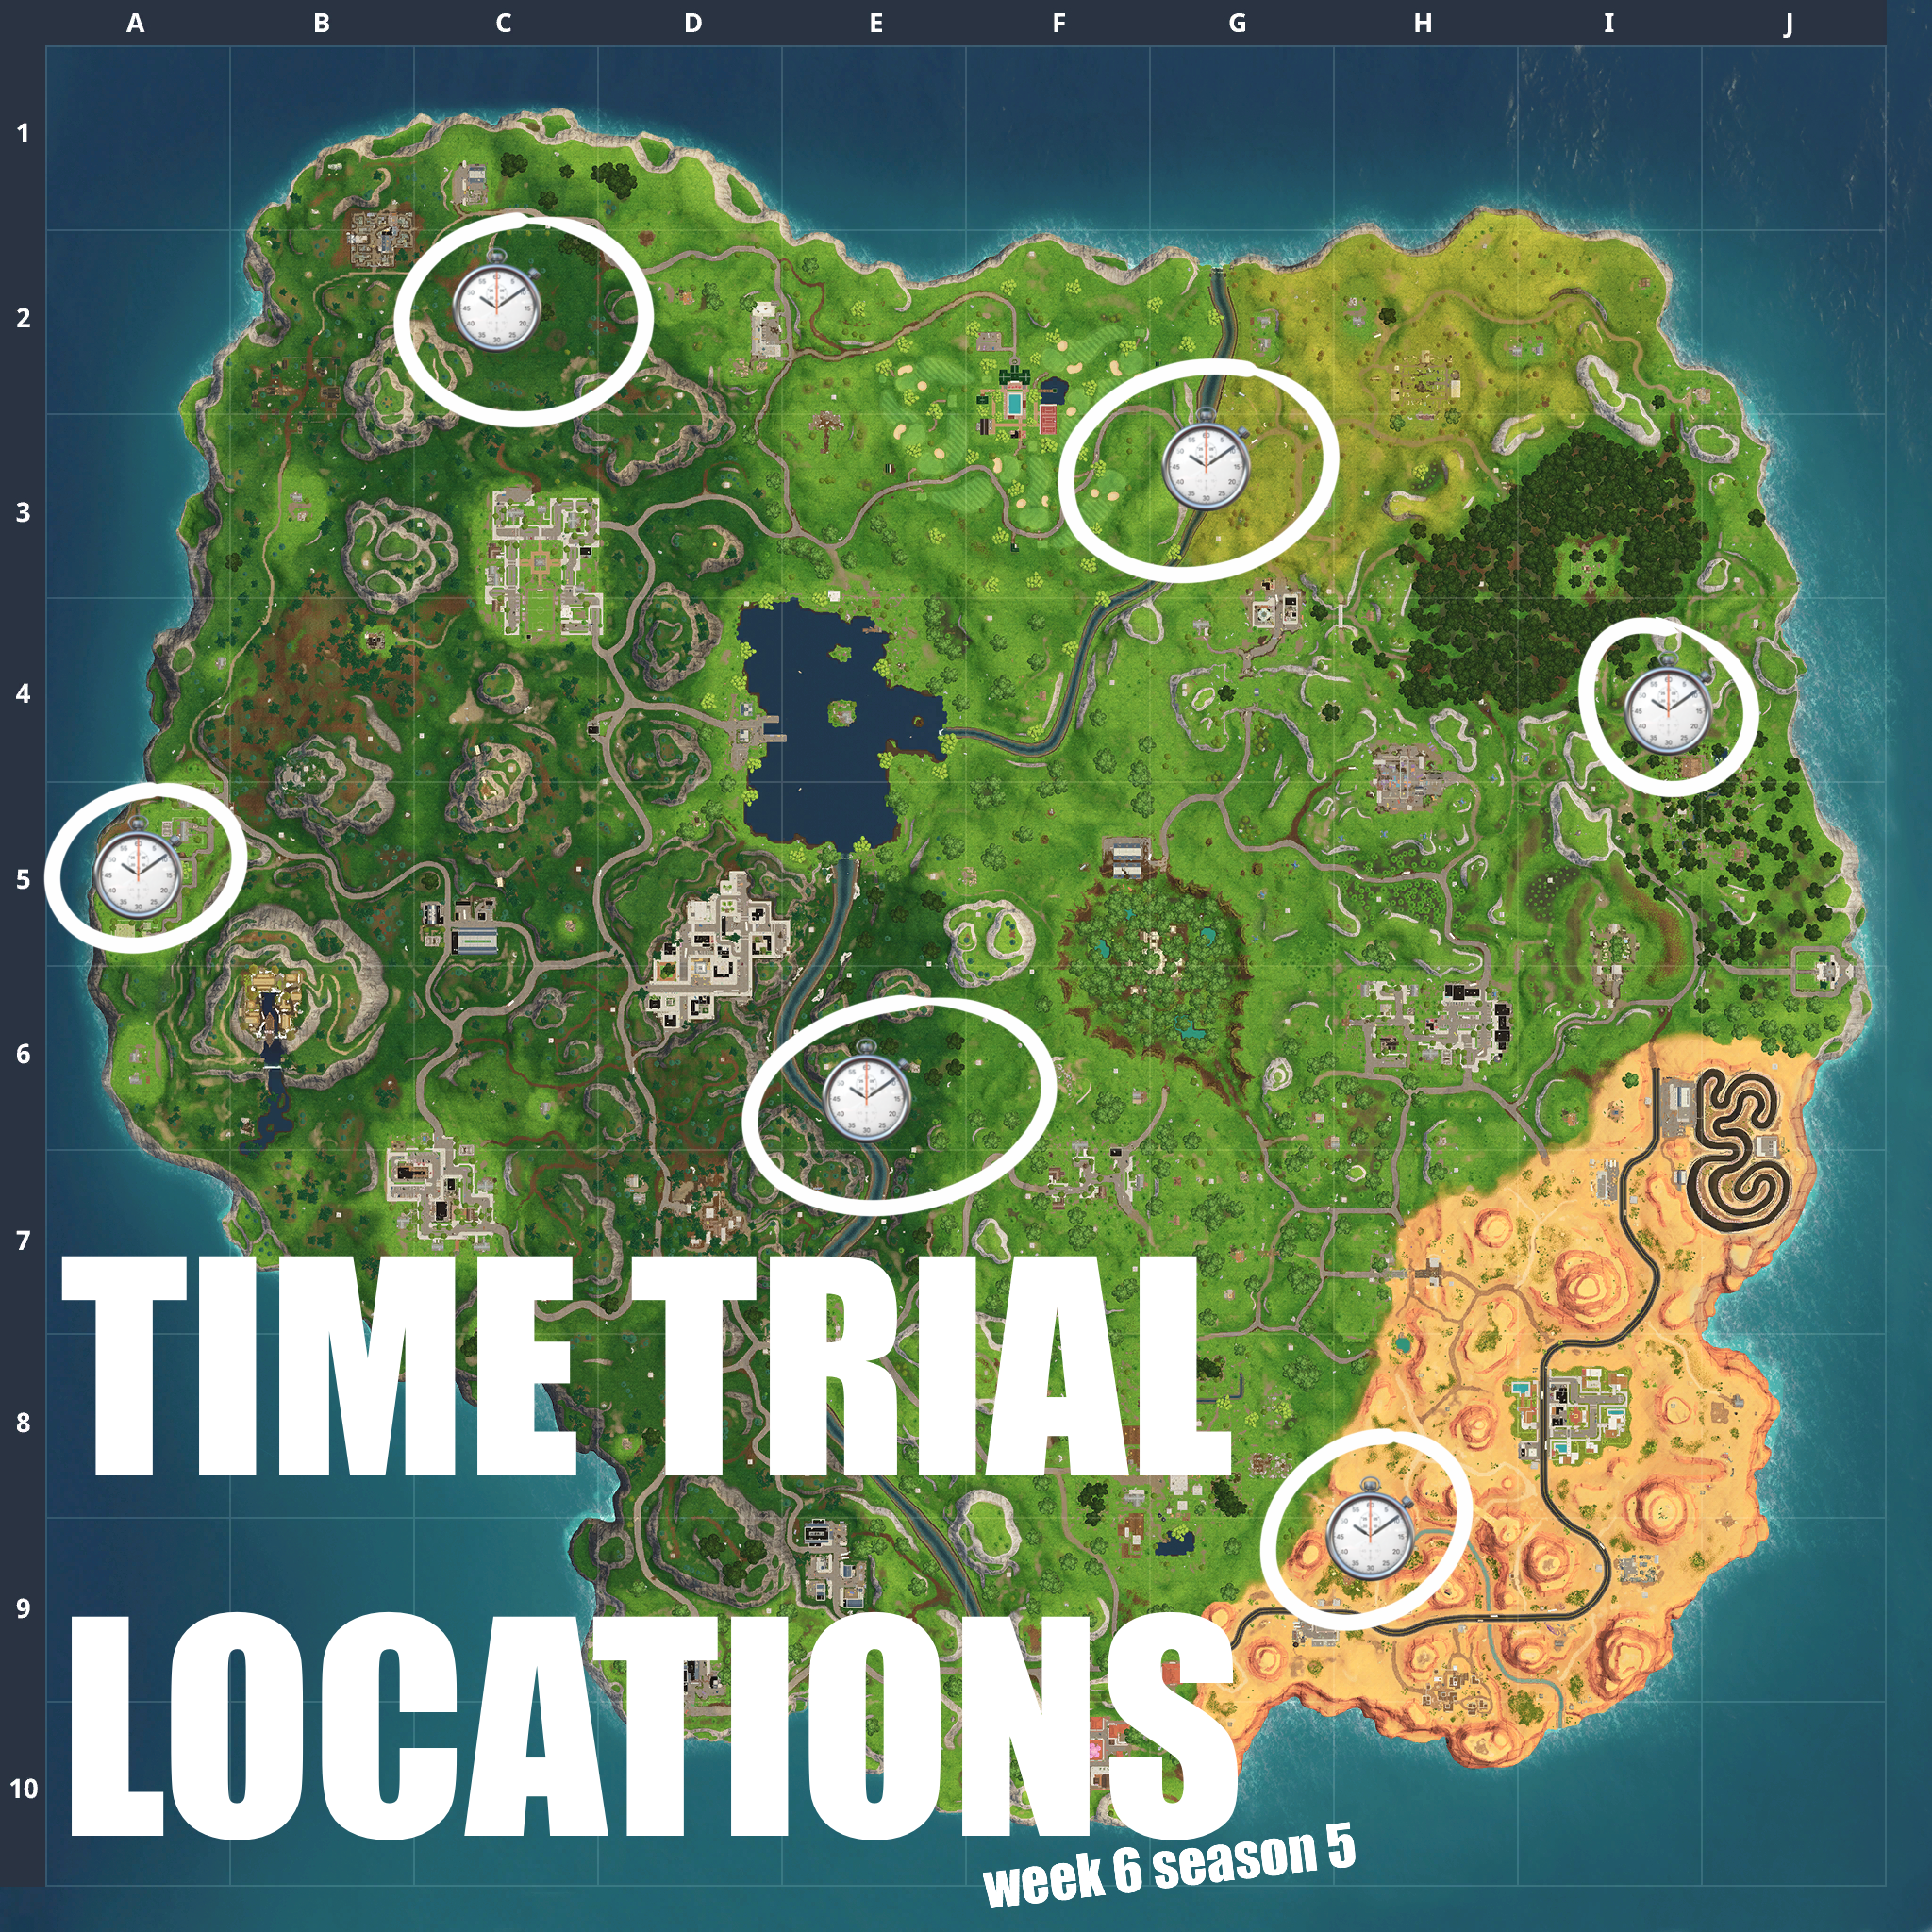 Here Are The Free Battle Pass Challenges For Week 6 Season 5 Of